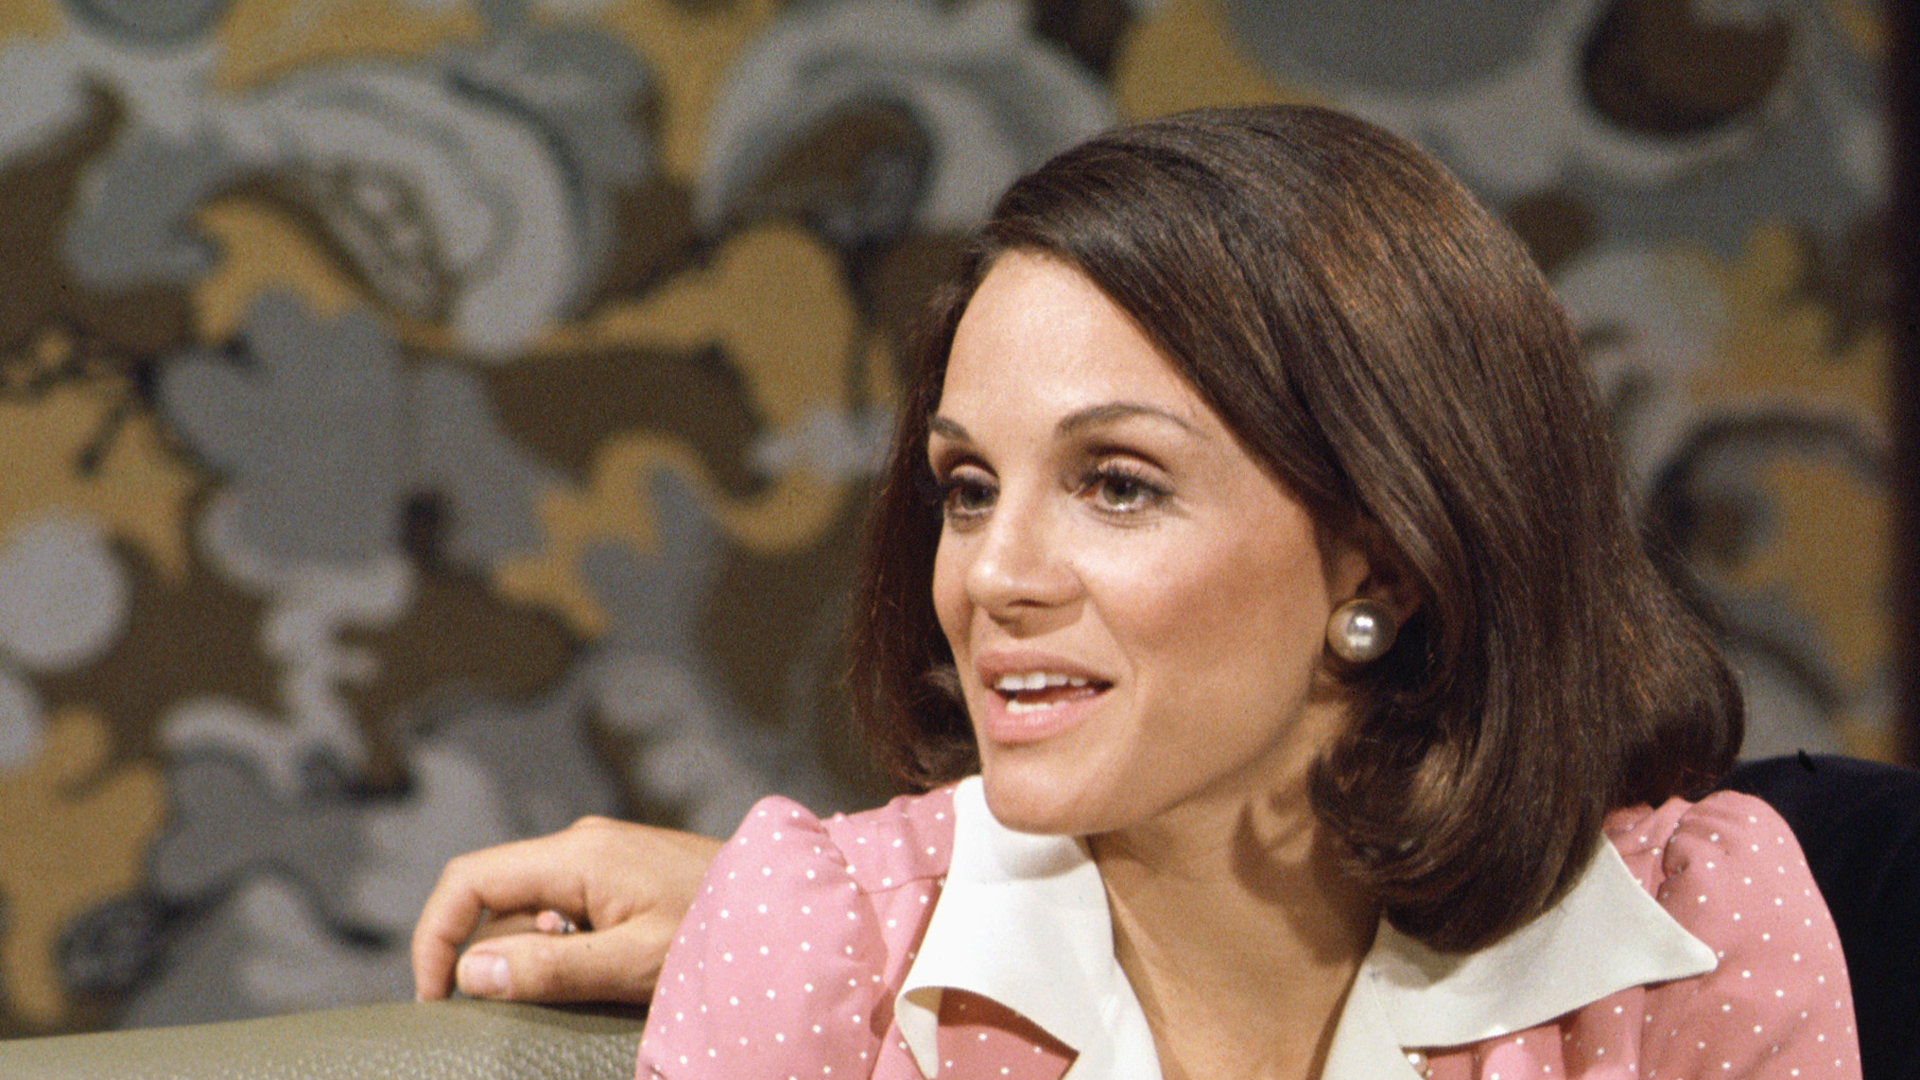 """Valerie Harper as Rhoda Morgenstern in the TV show """"Rhoda"""" in 1975. (Credit: CBS Photo Archive/Getty Images)"""